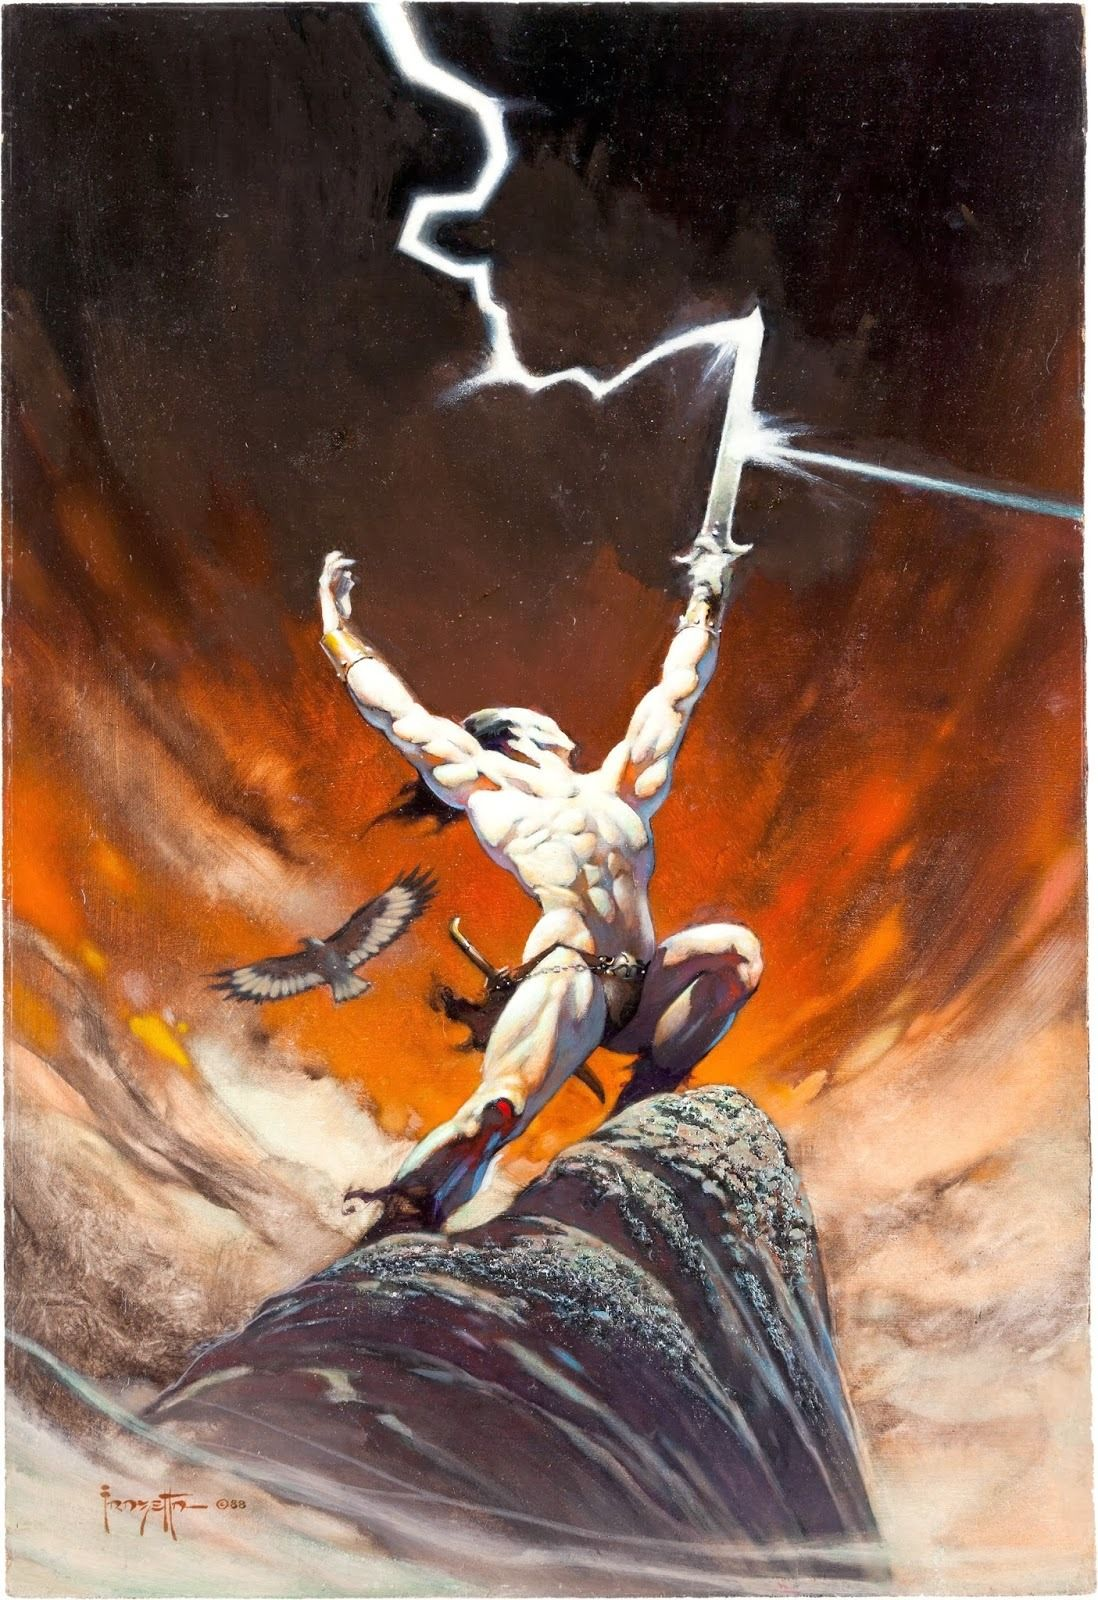 This poor guy just can't avoid that lightning. Frank Frazetta ...